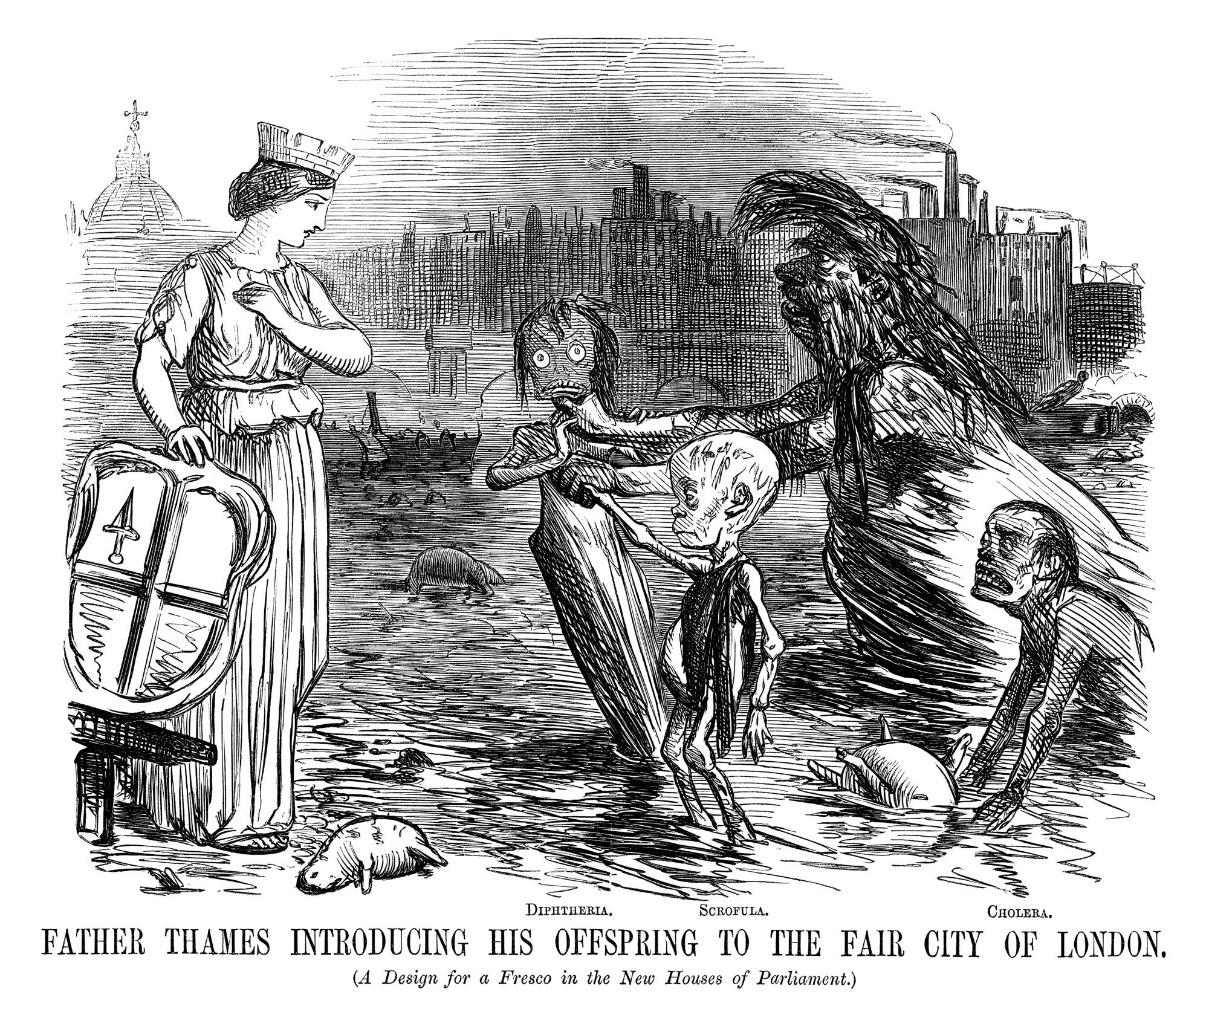 https://www.bl.uk/britishlibrary/~/media/bl/global/victorians/collection%20items/punch%20father%201858%2007%2003%205.jpg